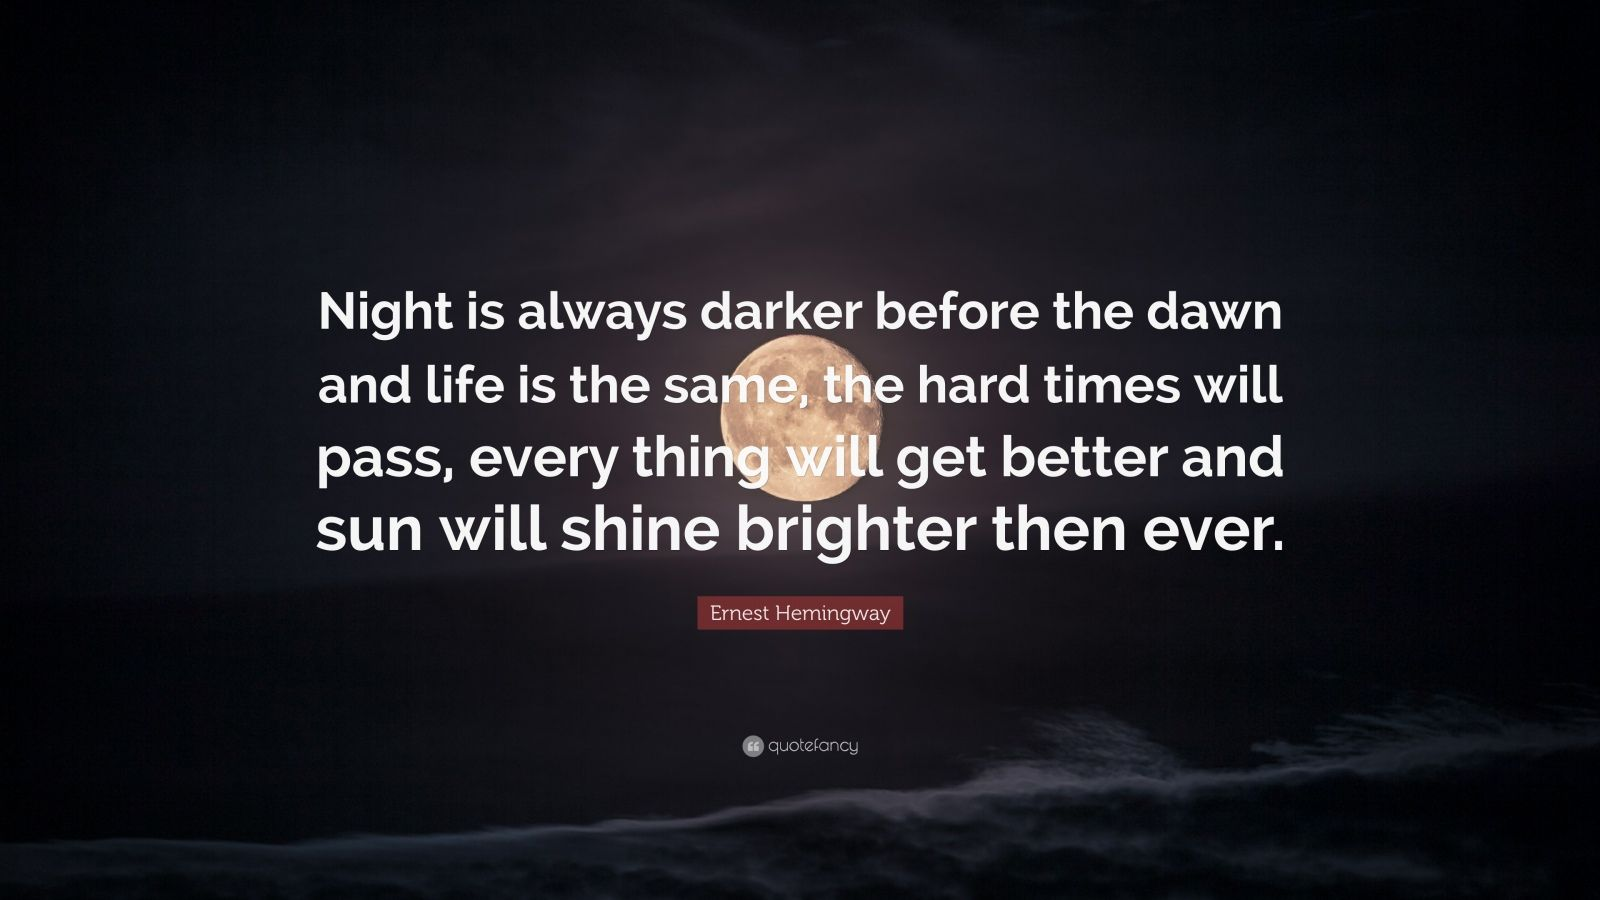 "Ernest Hemingway Quote: ""Night is always darker before the dawn and life is the same, the hard times will pass, every thing will get better and sun will shine brighter then ever."""